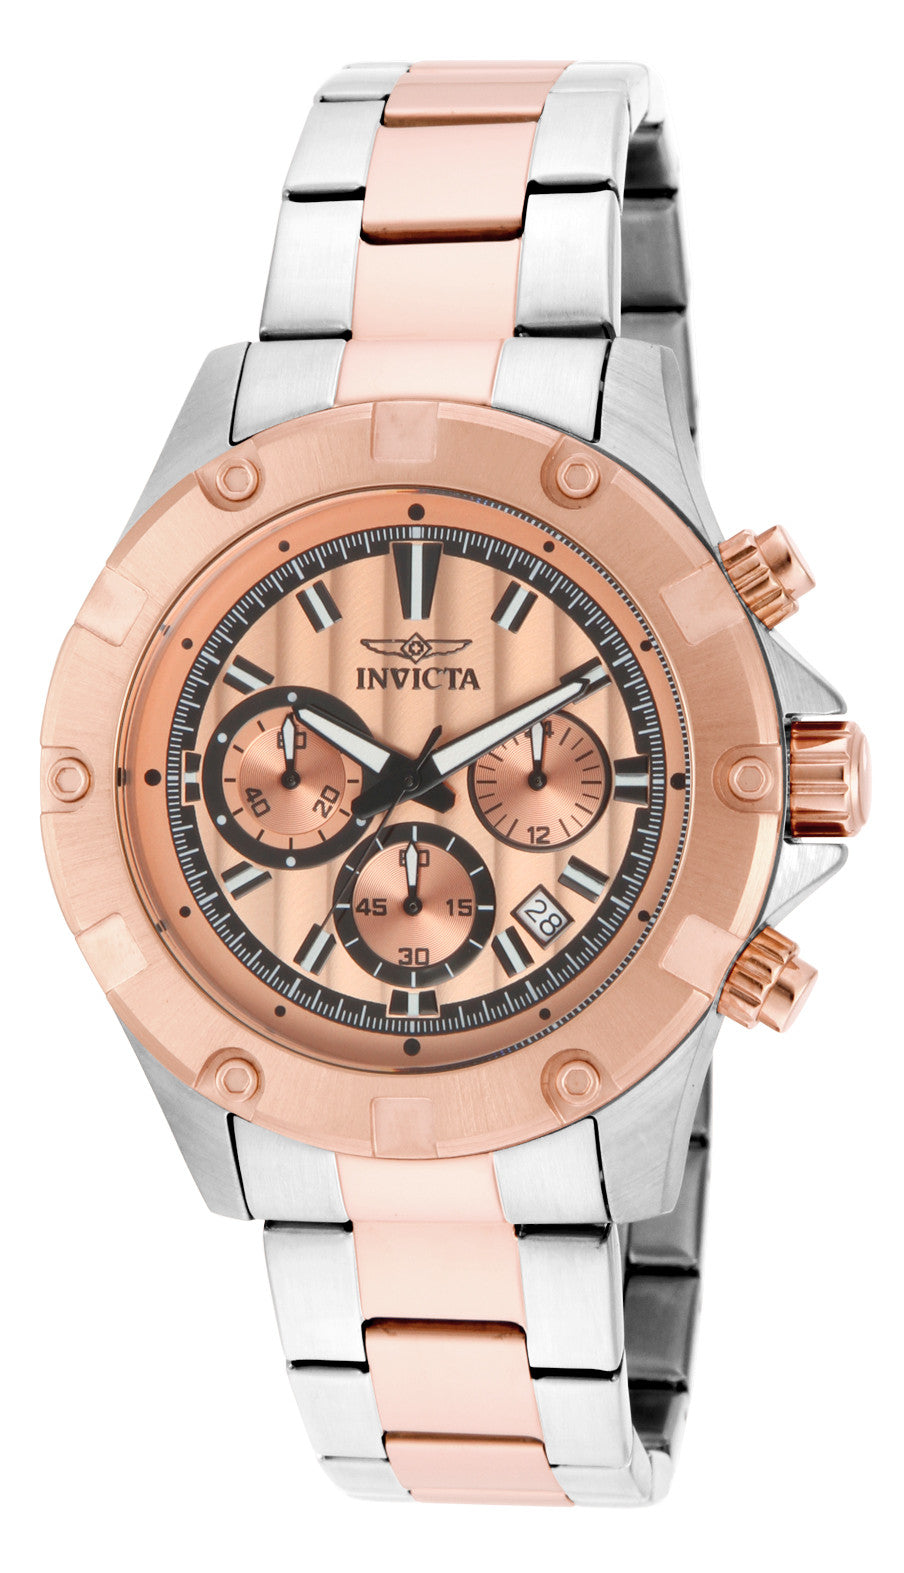 Invicta Men's 15605 Specialty Quartz Chronograph Rose Gold Dial Watch